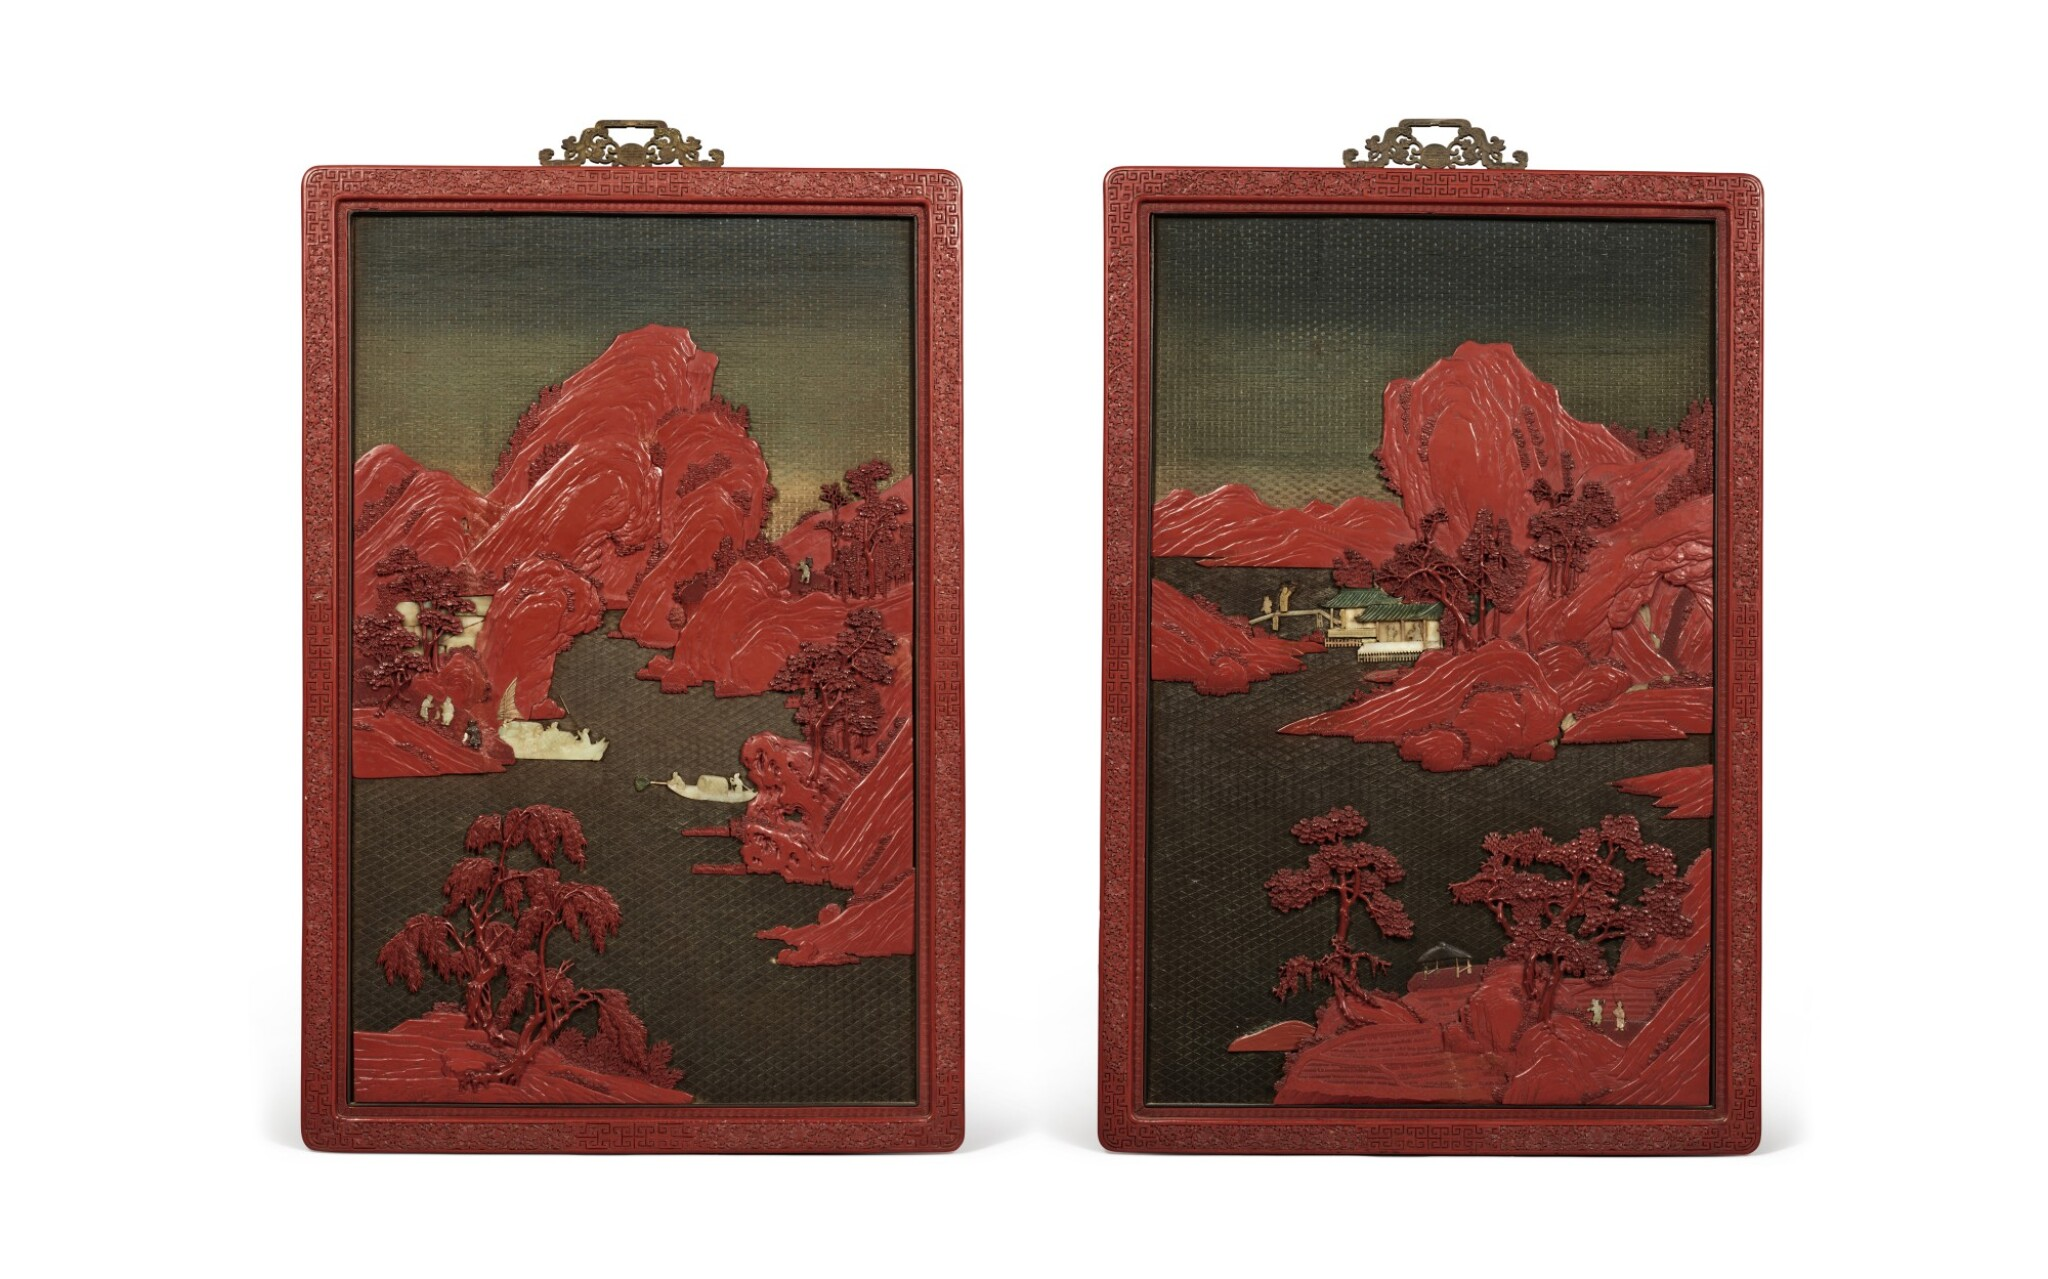 View full screen - View 1 of Lot 232. A pair of large embellished carved wood polychrome lacquer panels, Qing dynasty, 18th / 19th century   清十八 / 十九世紀 木雕罩漆鑲玉石山水人物圖大掛屏一對.